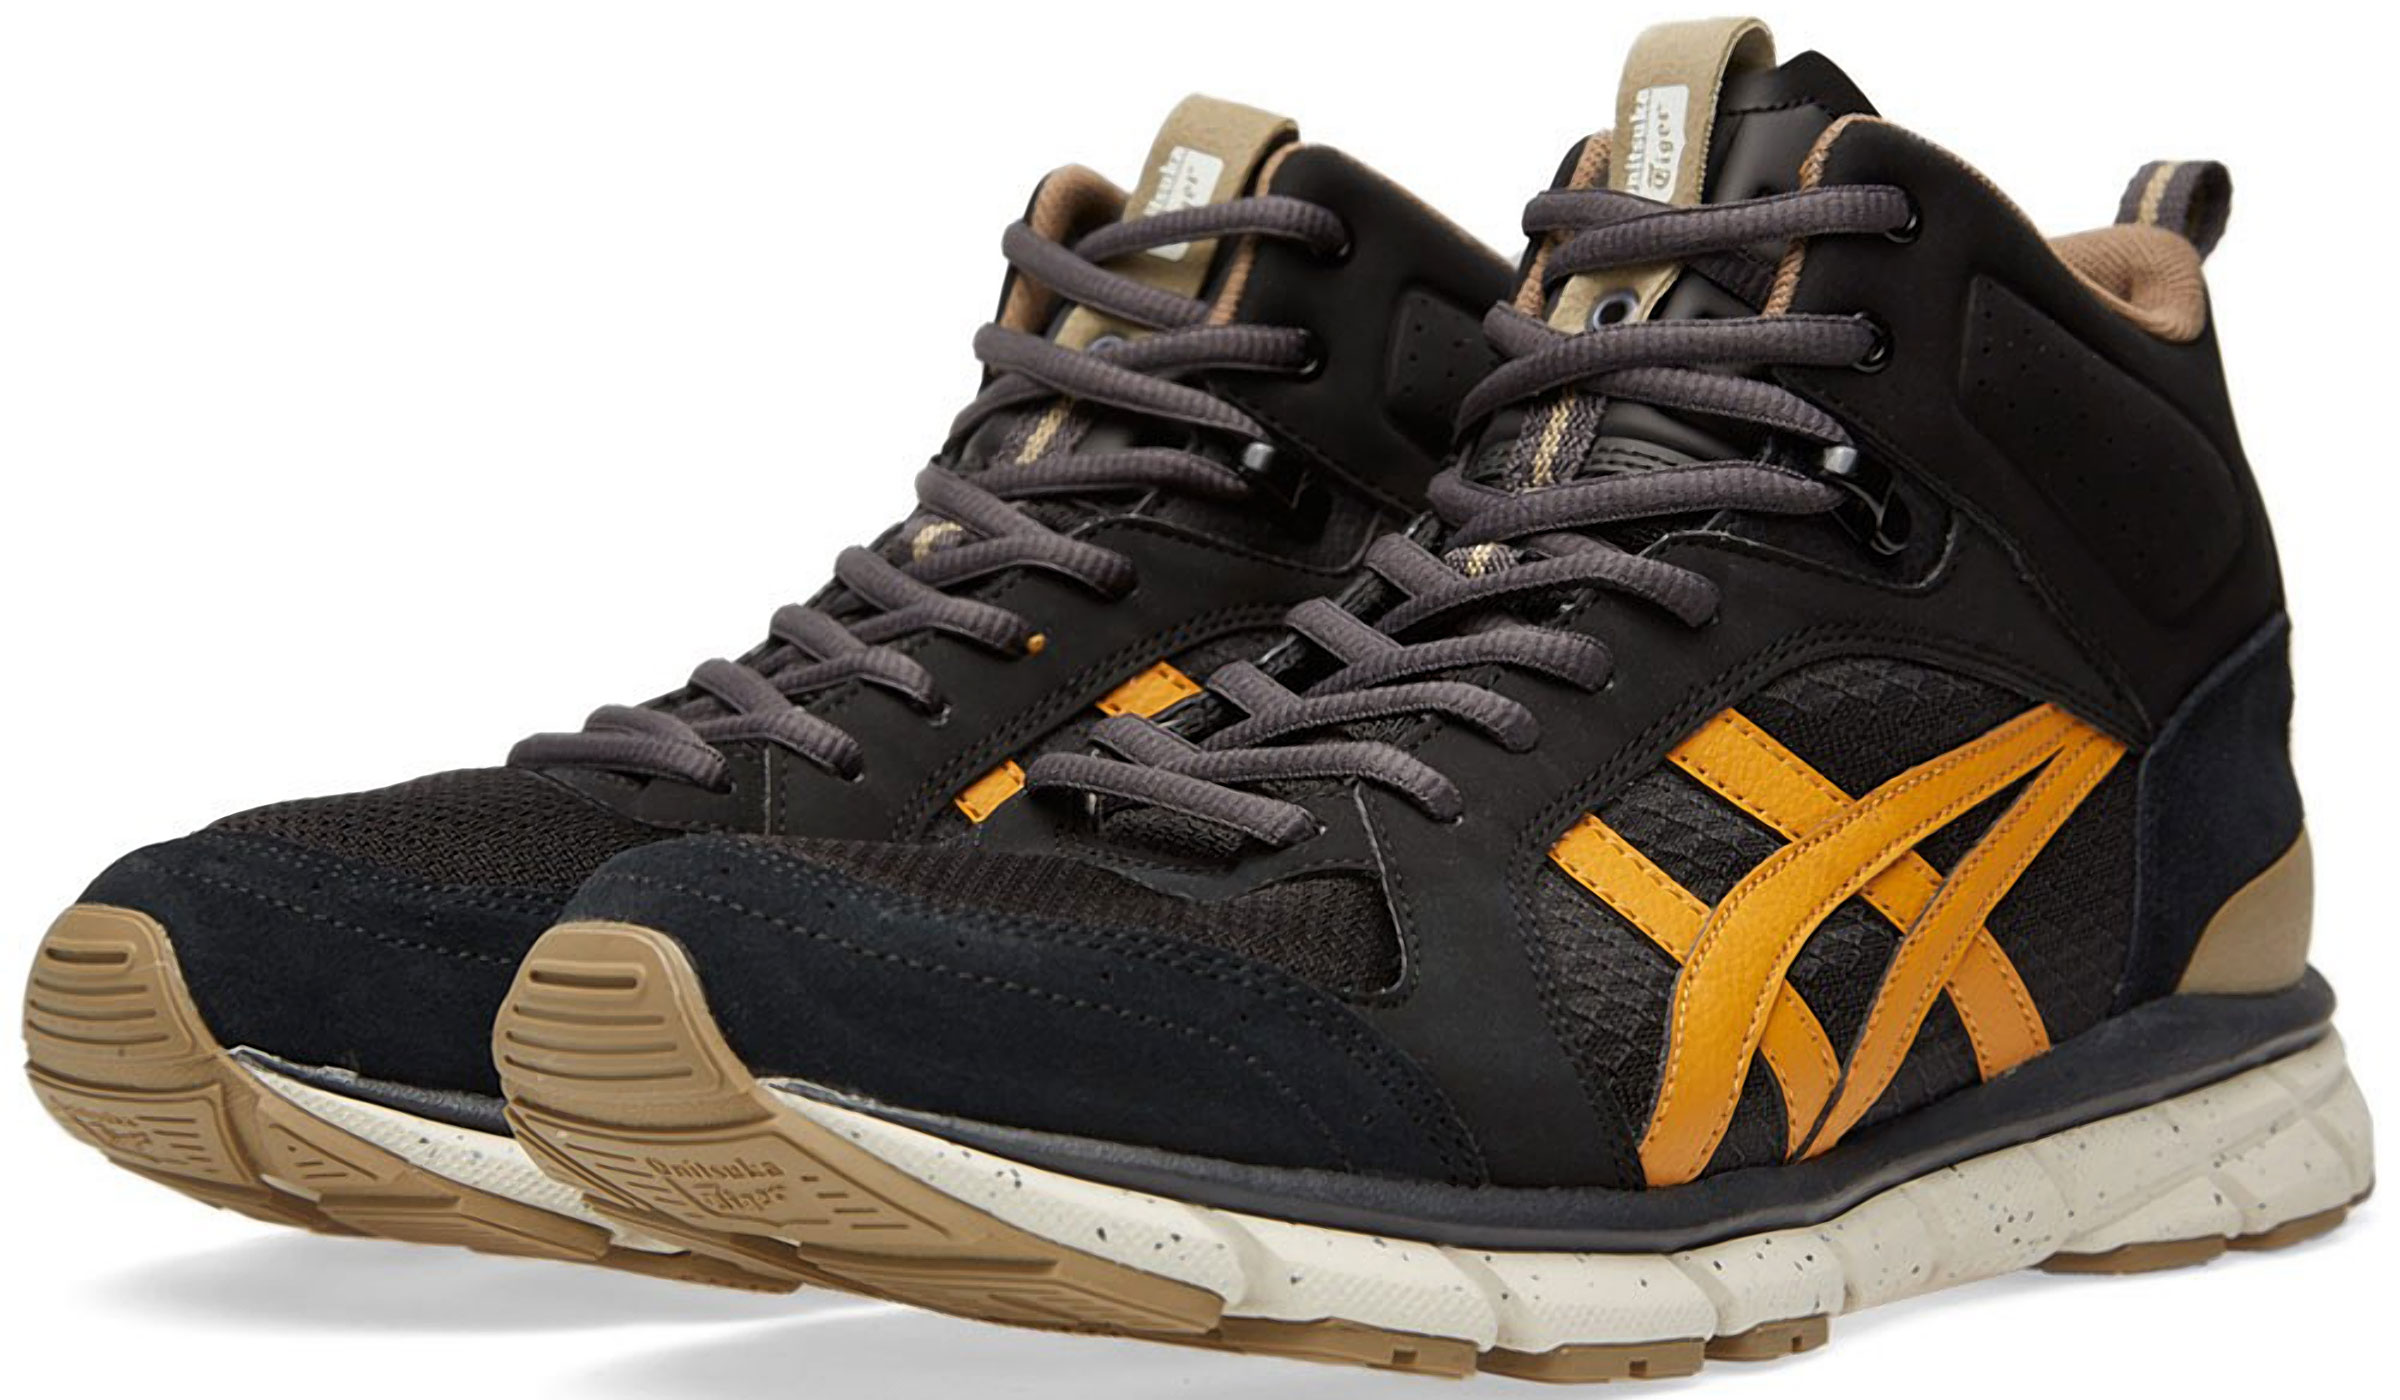 ONITSUKA TIGER HARANDIA MT - BLACK & TAN